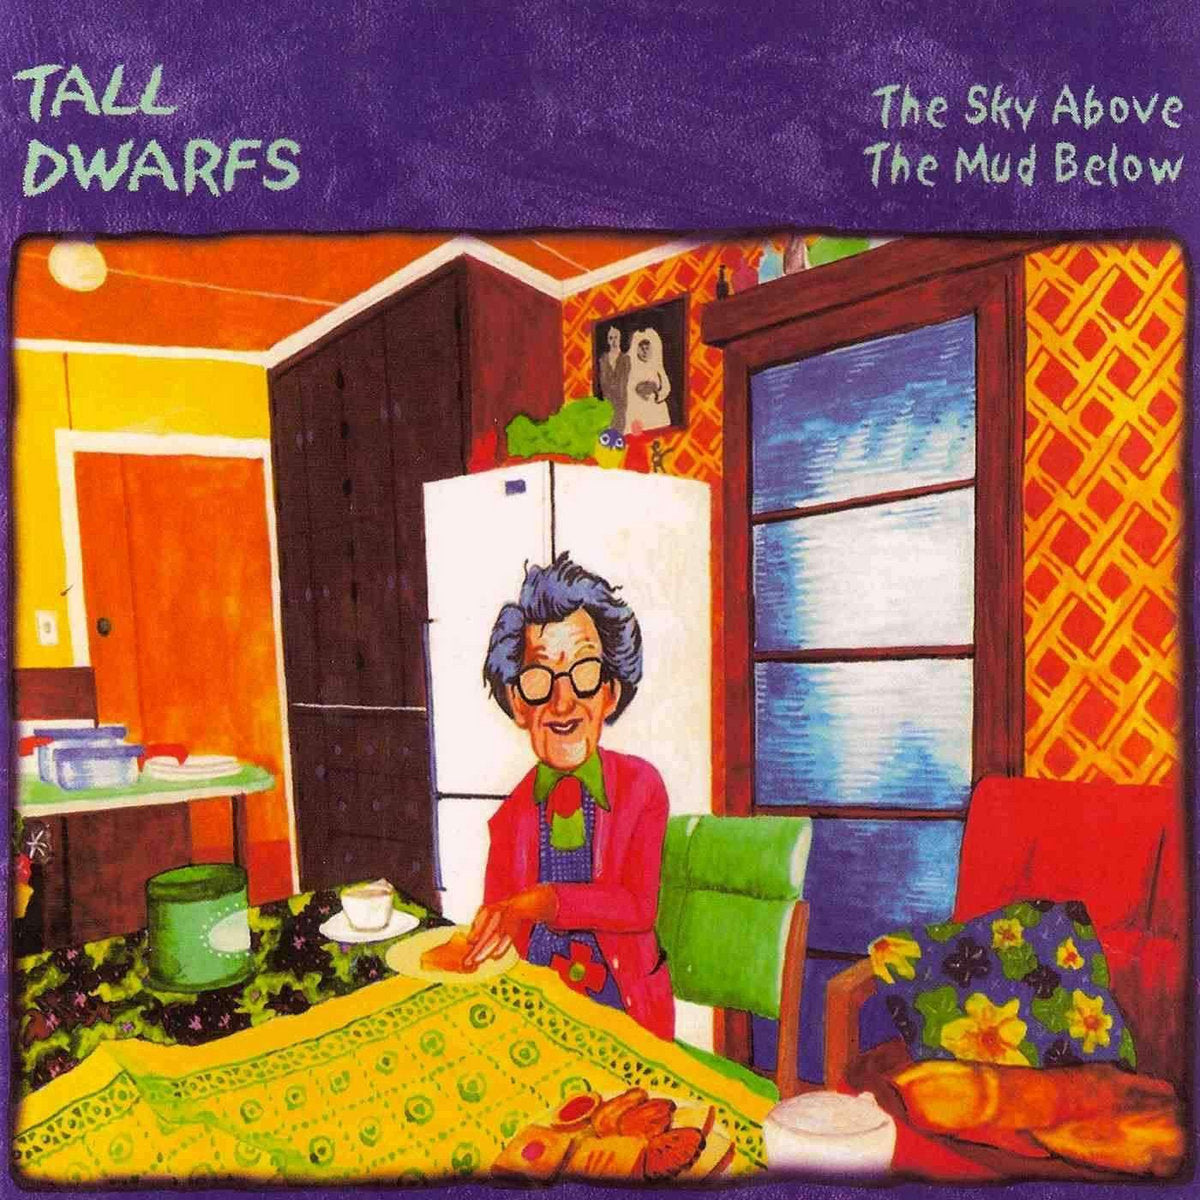 FN456 Tall Dwarfs - The Sky Above The Mud Below (2002)